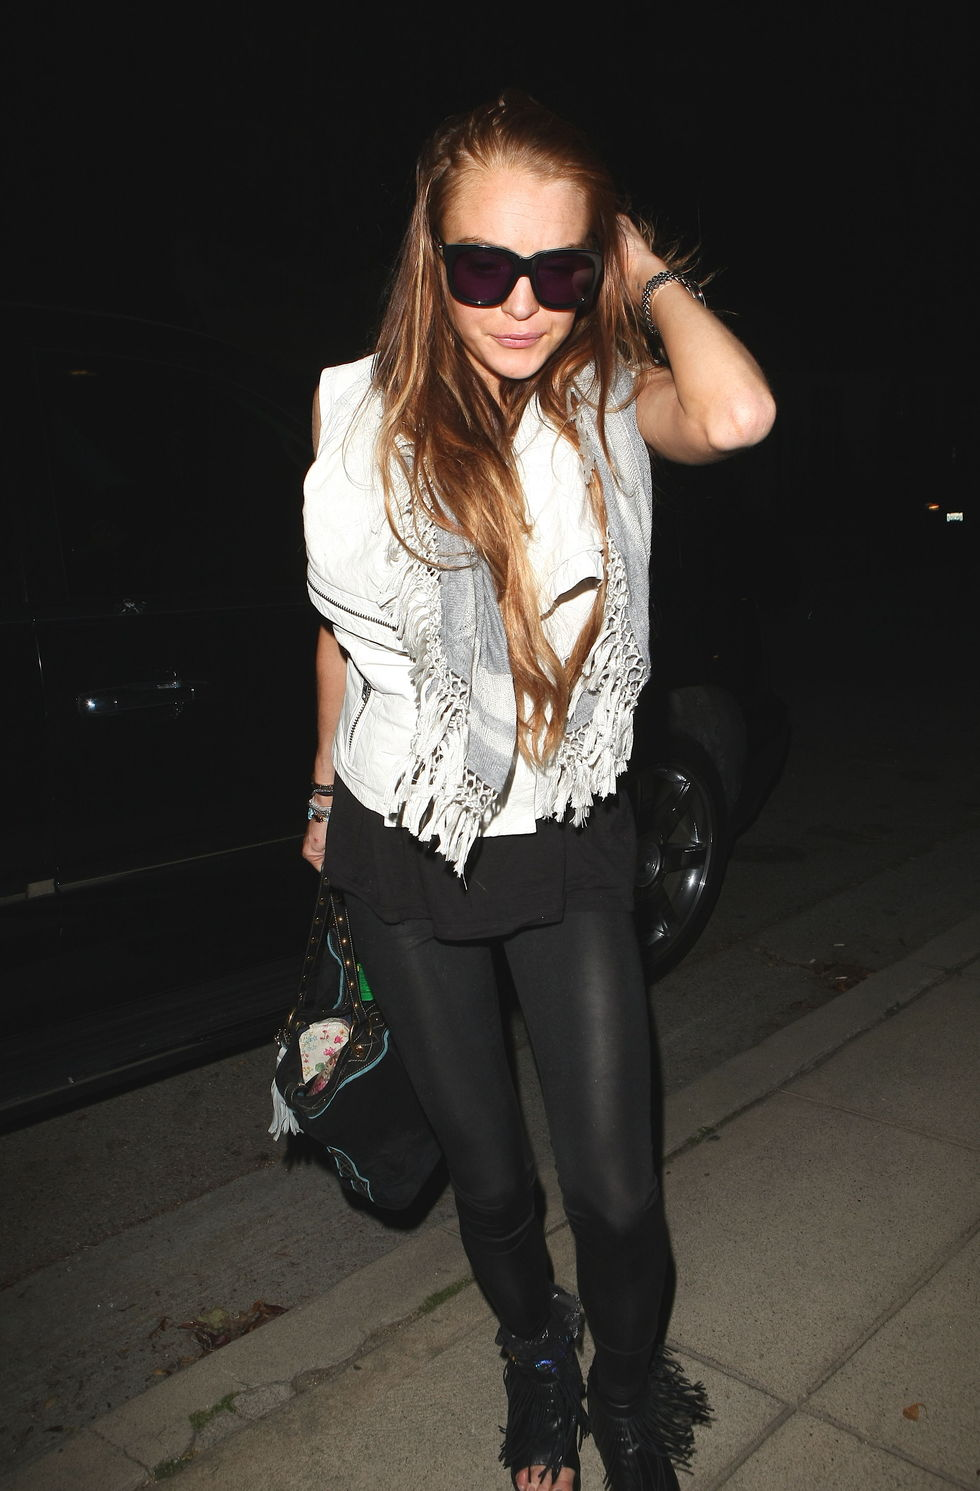 lindsay-lohan-candids-in-los-angeles-4-02